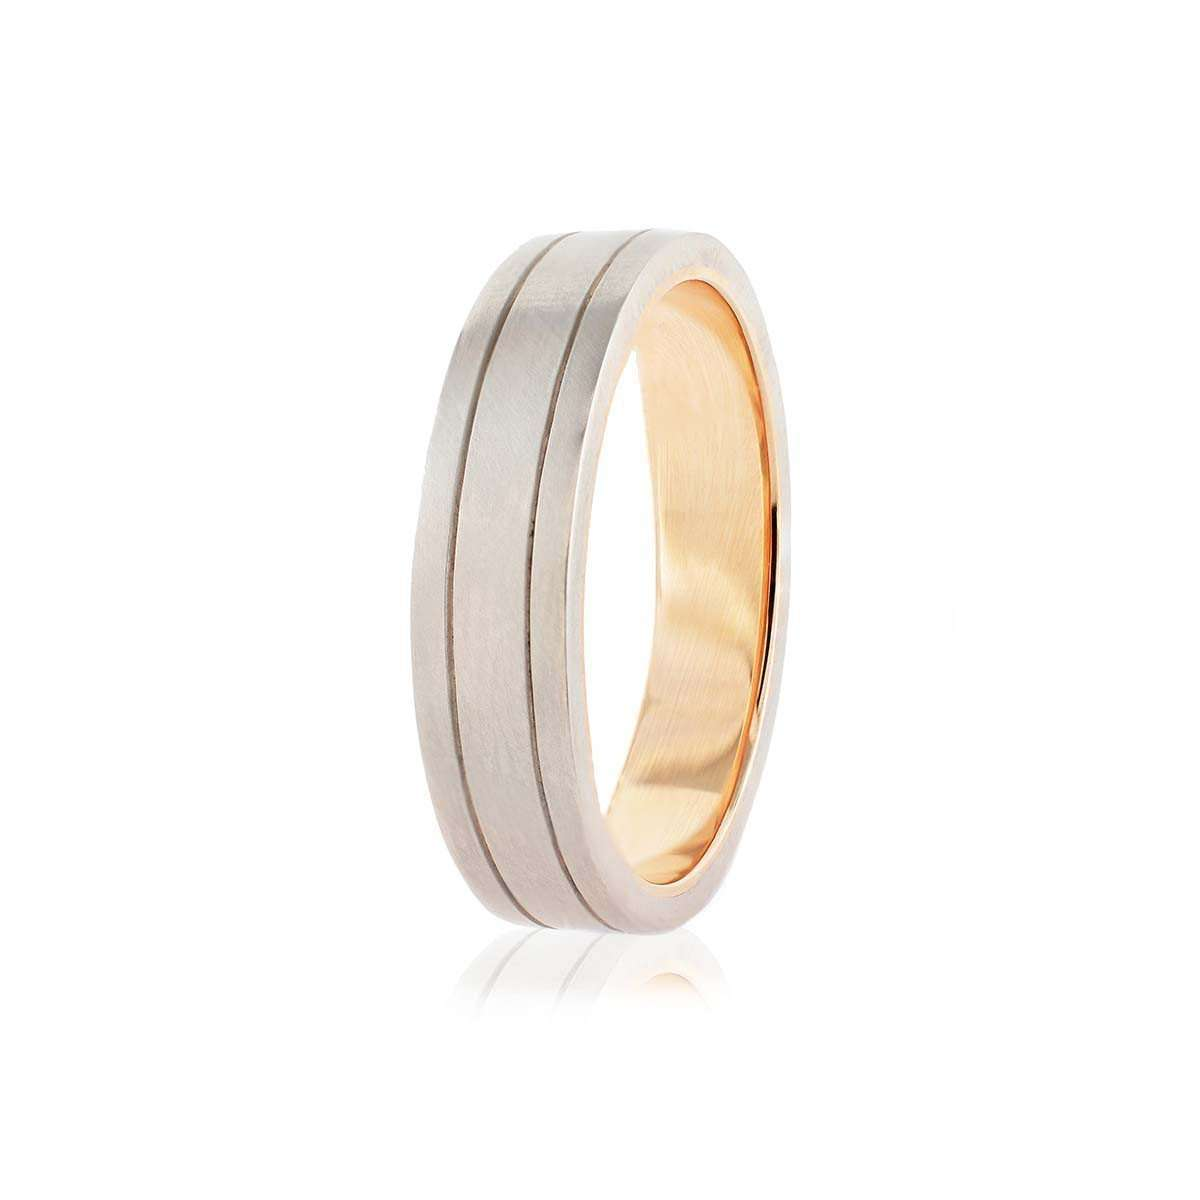 Men's Palladium and Rose Gold Wedding Band-Nigel OReilly Goldsmith and Jewellery Design-JewelStreet US